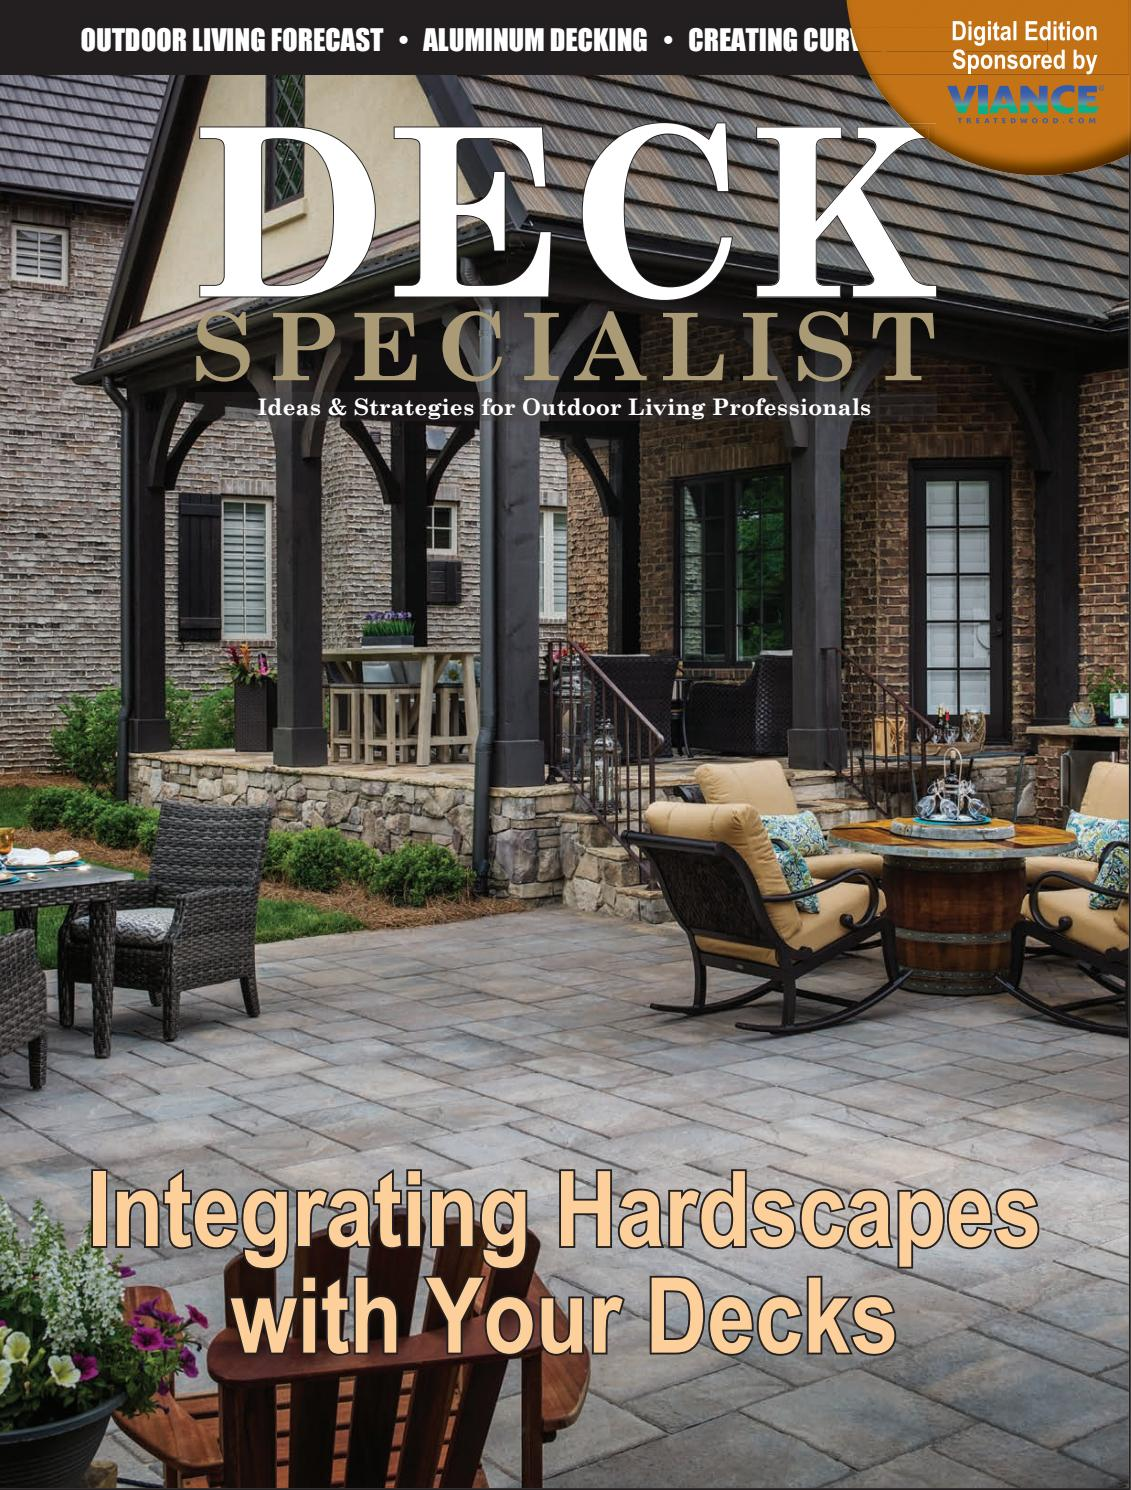 Deck Specialist Spring 2019 by 526 Media Group - issuu